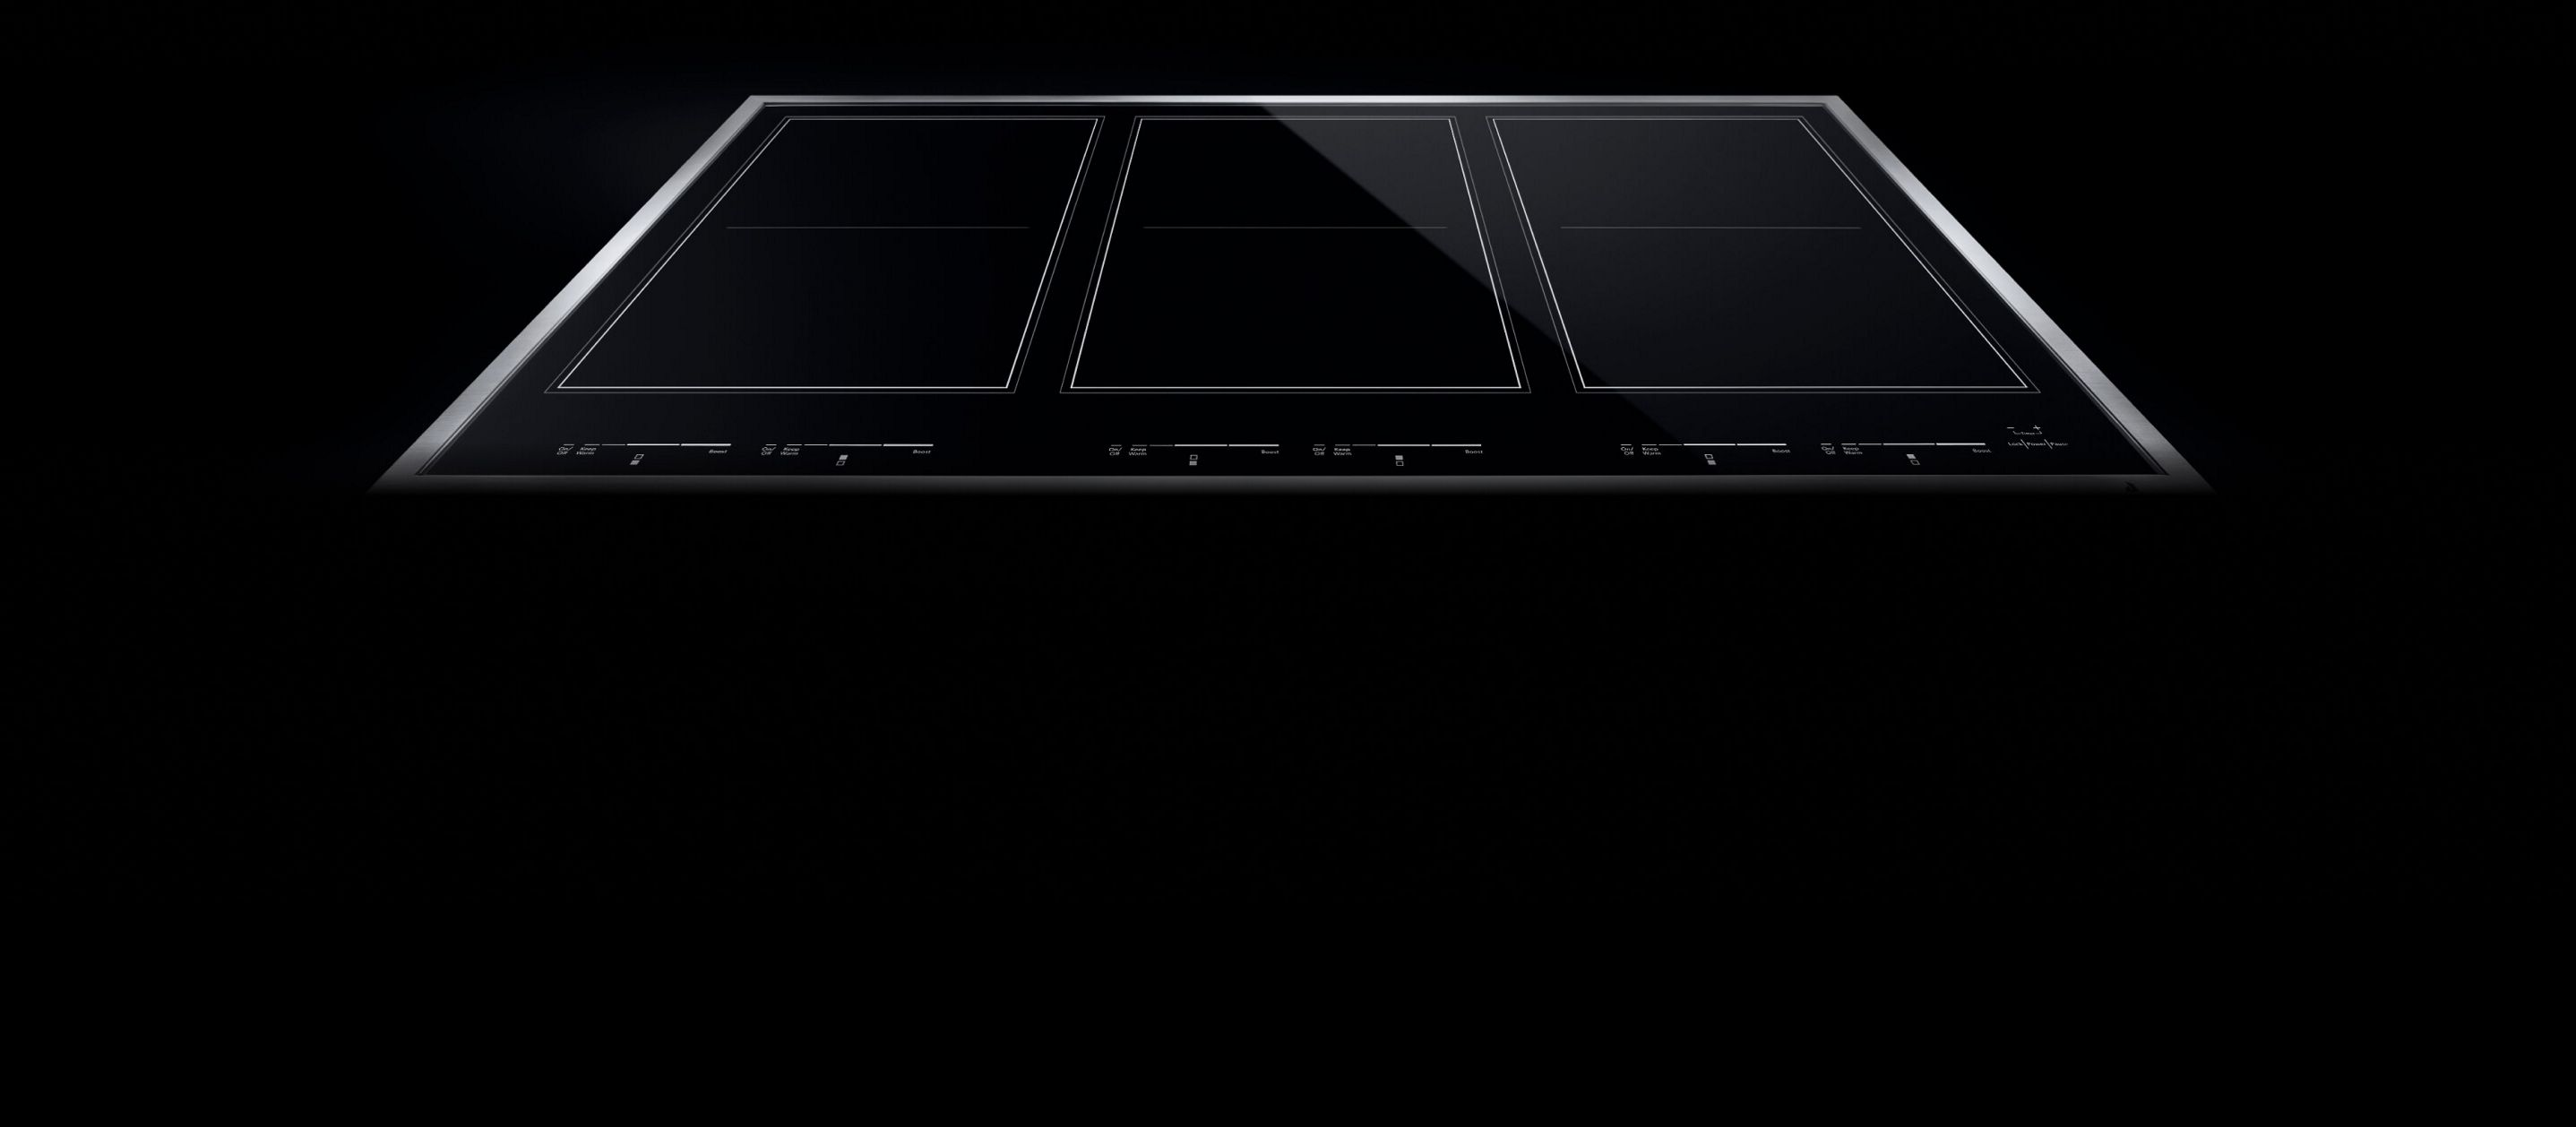 A JennAir® induction cooktop with three flex zones.